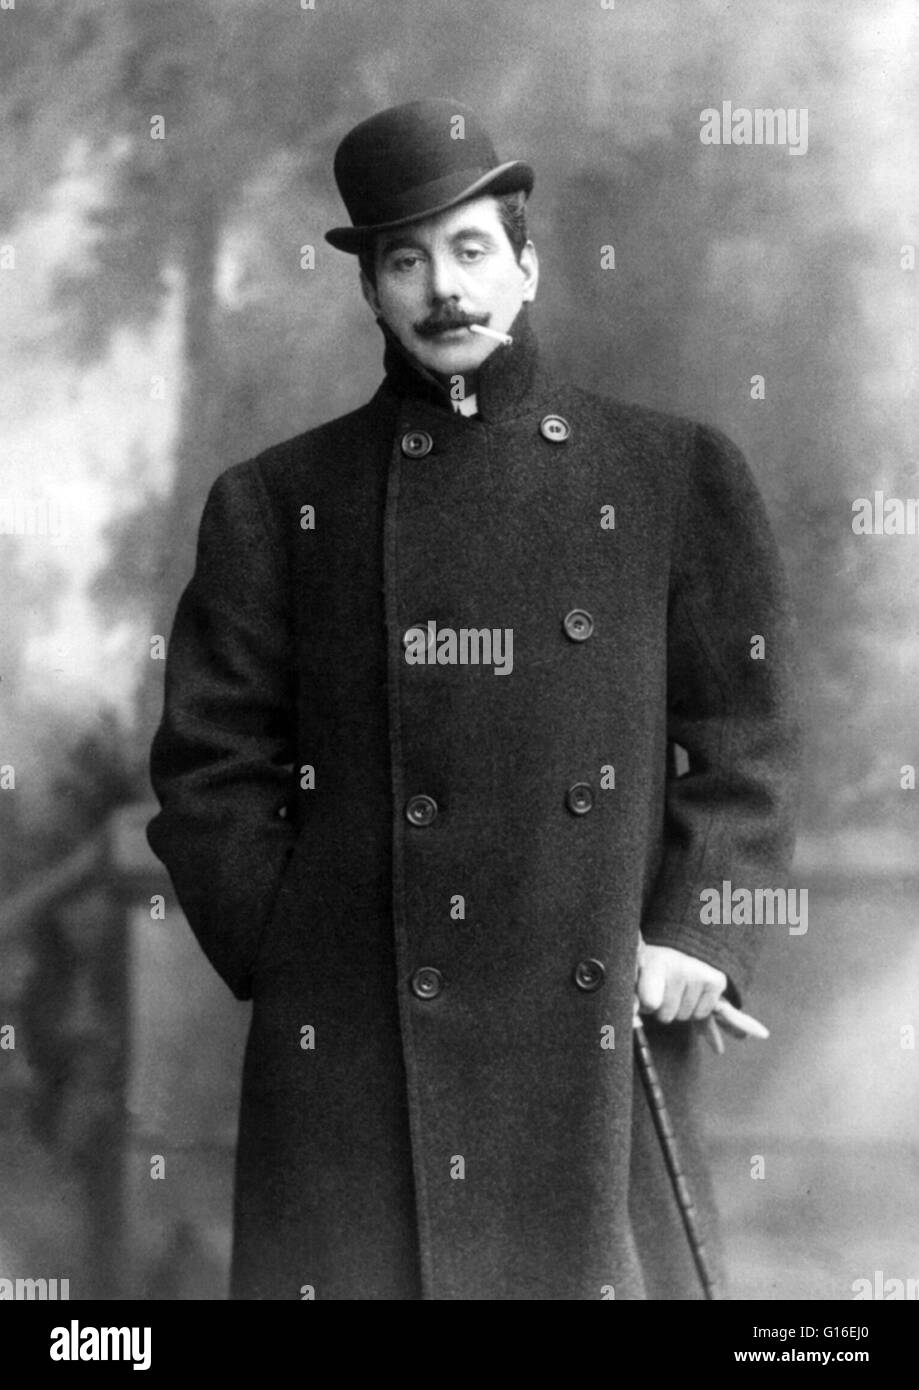 Giacomo Antonio Domenico Michele Secondo Maria Puccini (December 22, 1858 - November 29, 1924) was an Italian composer - Stock Image